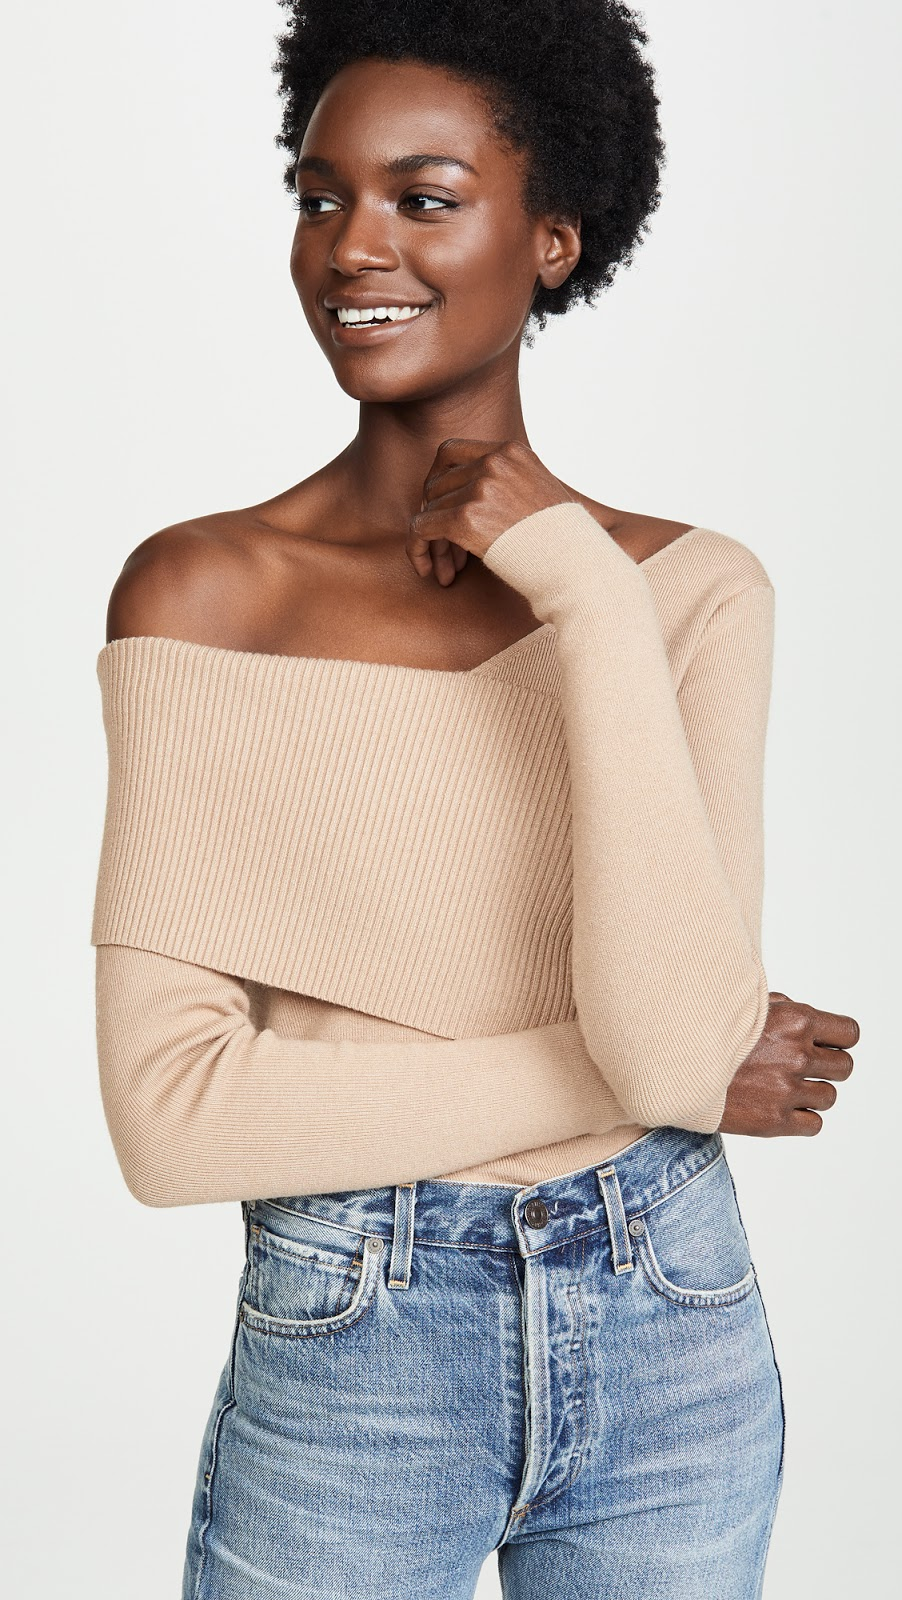 Chic Under-$100 Sweater for Fall